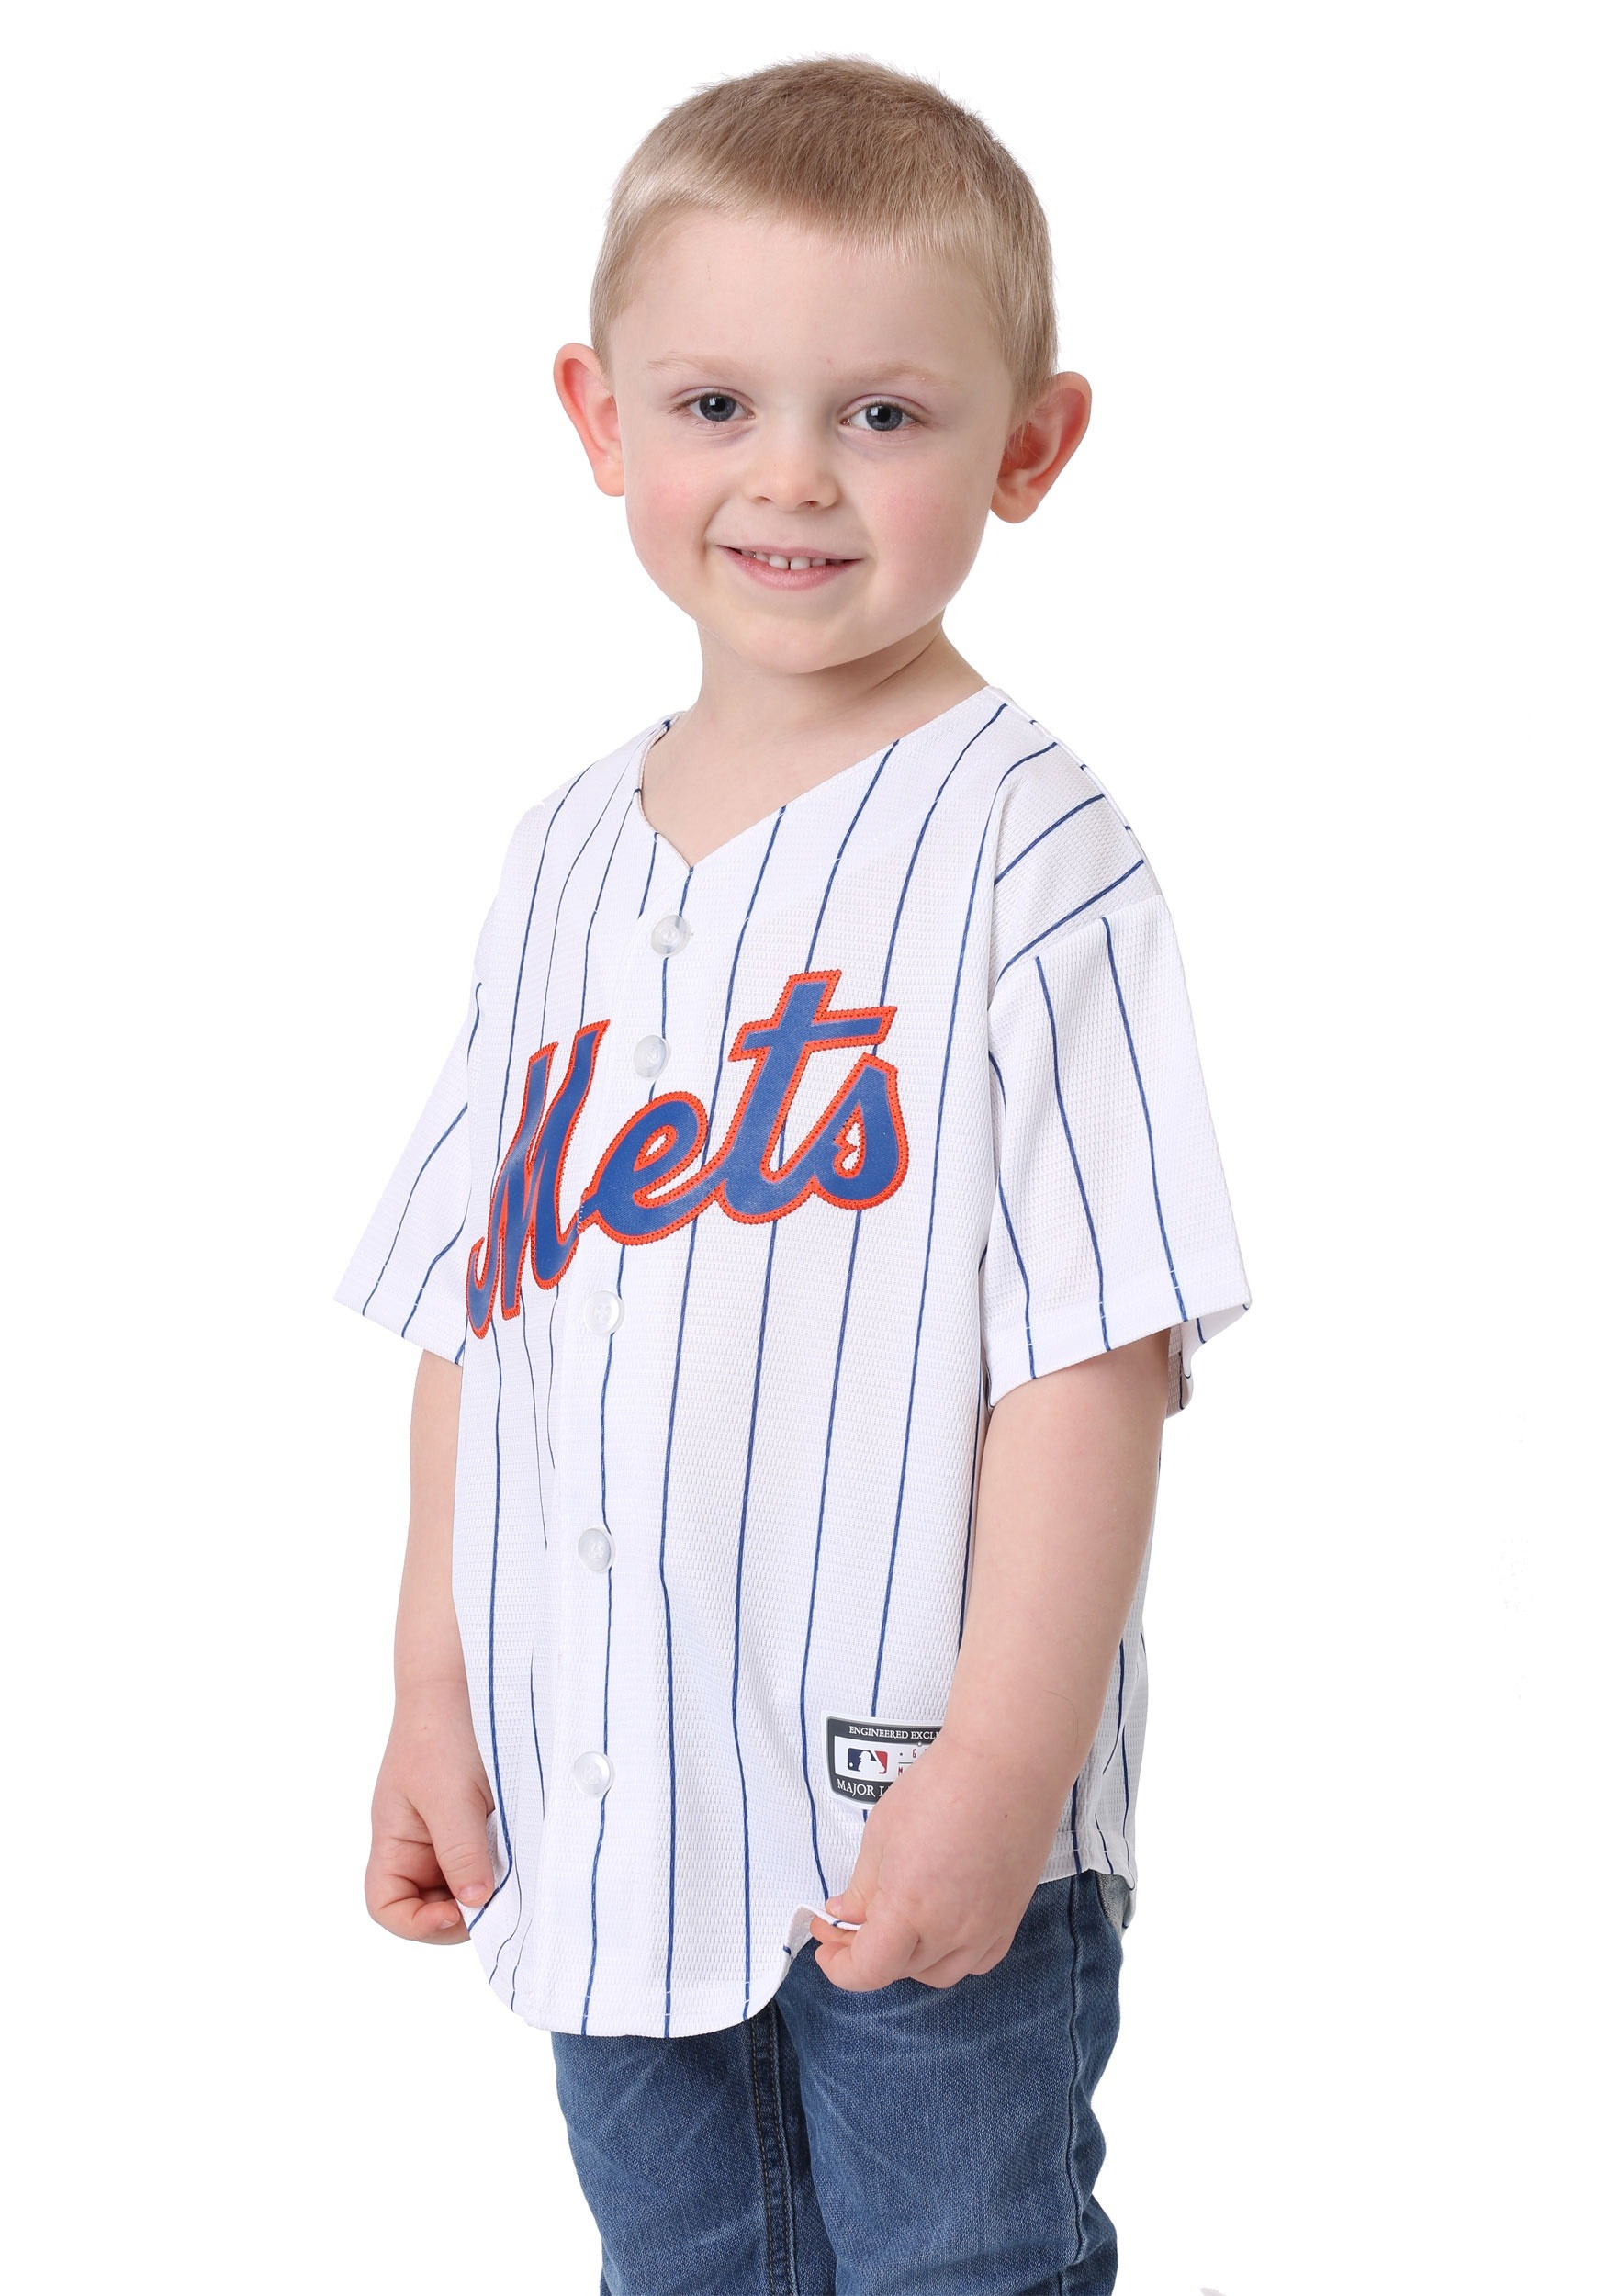 reputable site dfbc5 a3716 New York Mets Home Replica Blank Back Child Jersey